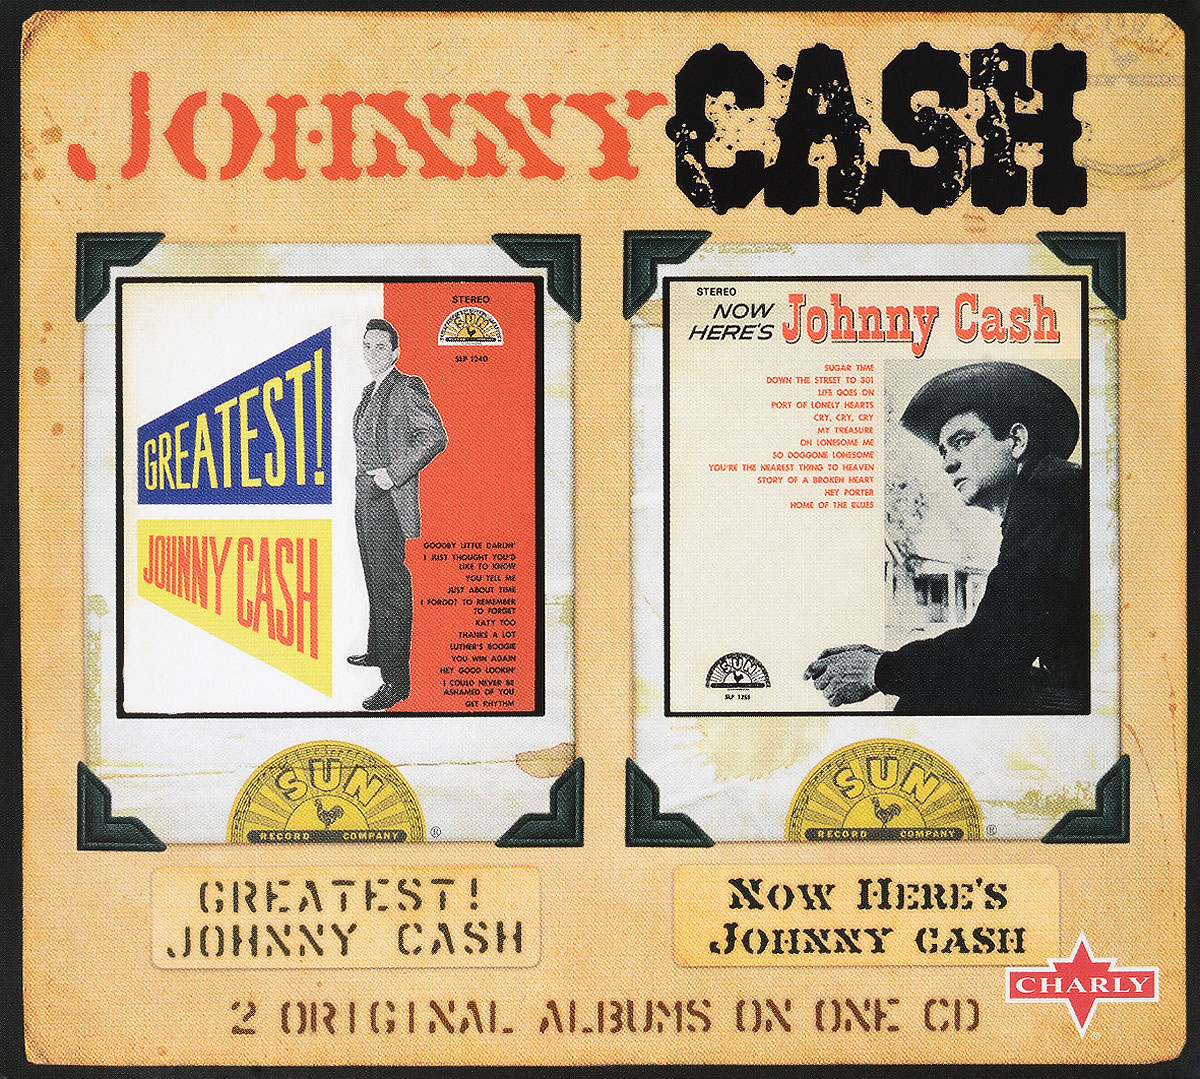 лучшая цена Джонни Кэш Johnny Cash. Greatest! Johnny Cash & Now Here's Johnny Cash